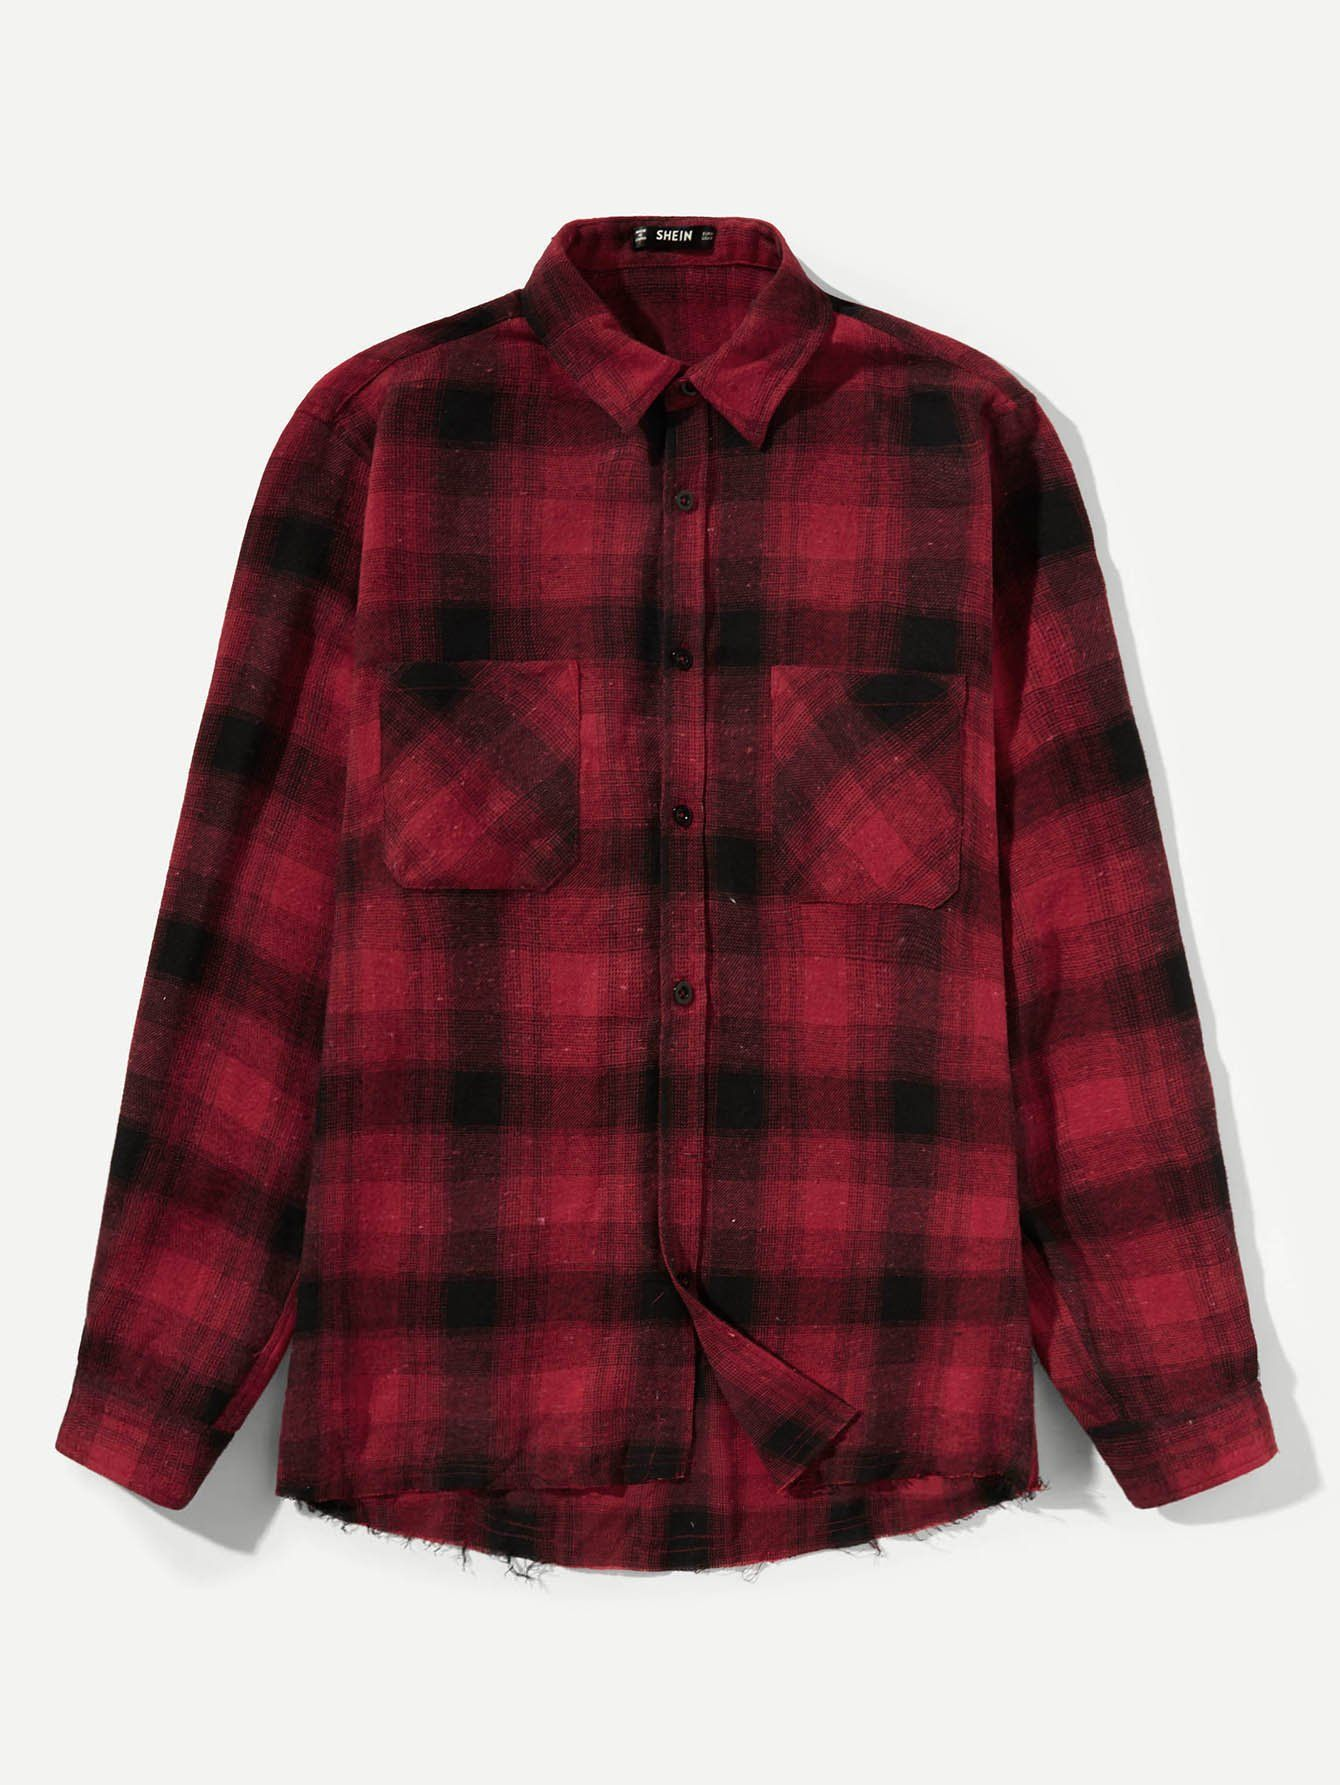 225123b307 Men's Pocket Patched Red & Plaid Print Shirt FREE SHIP | Products ...